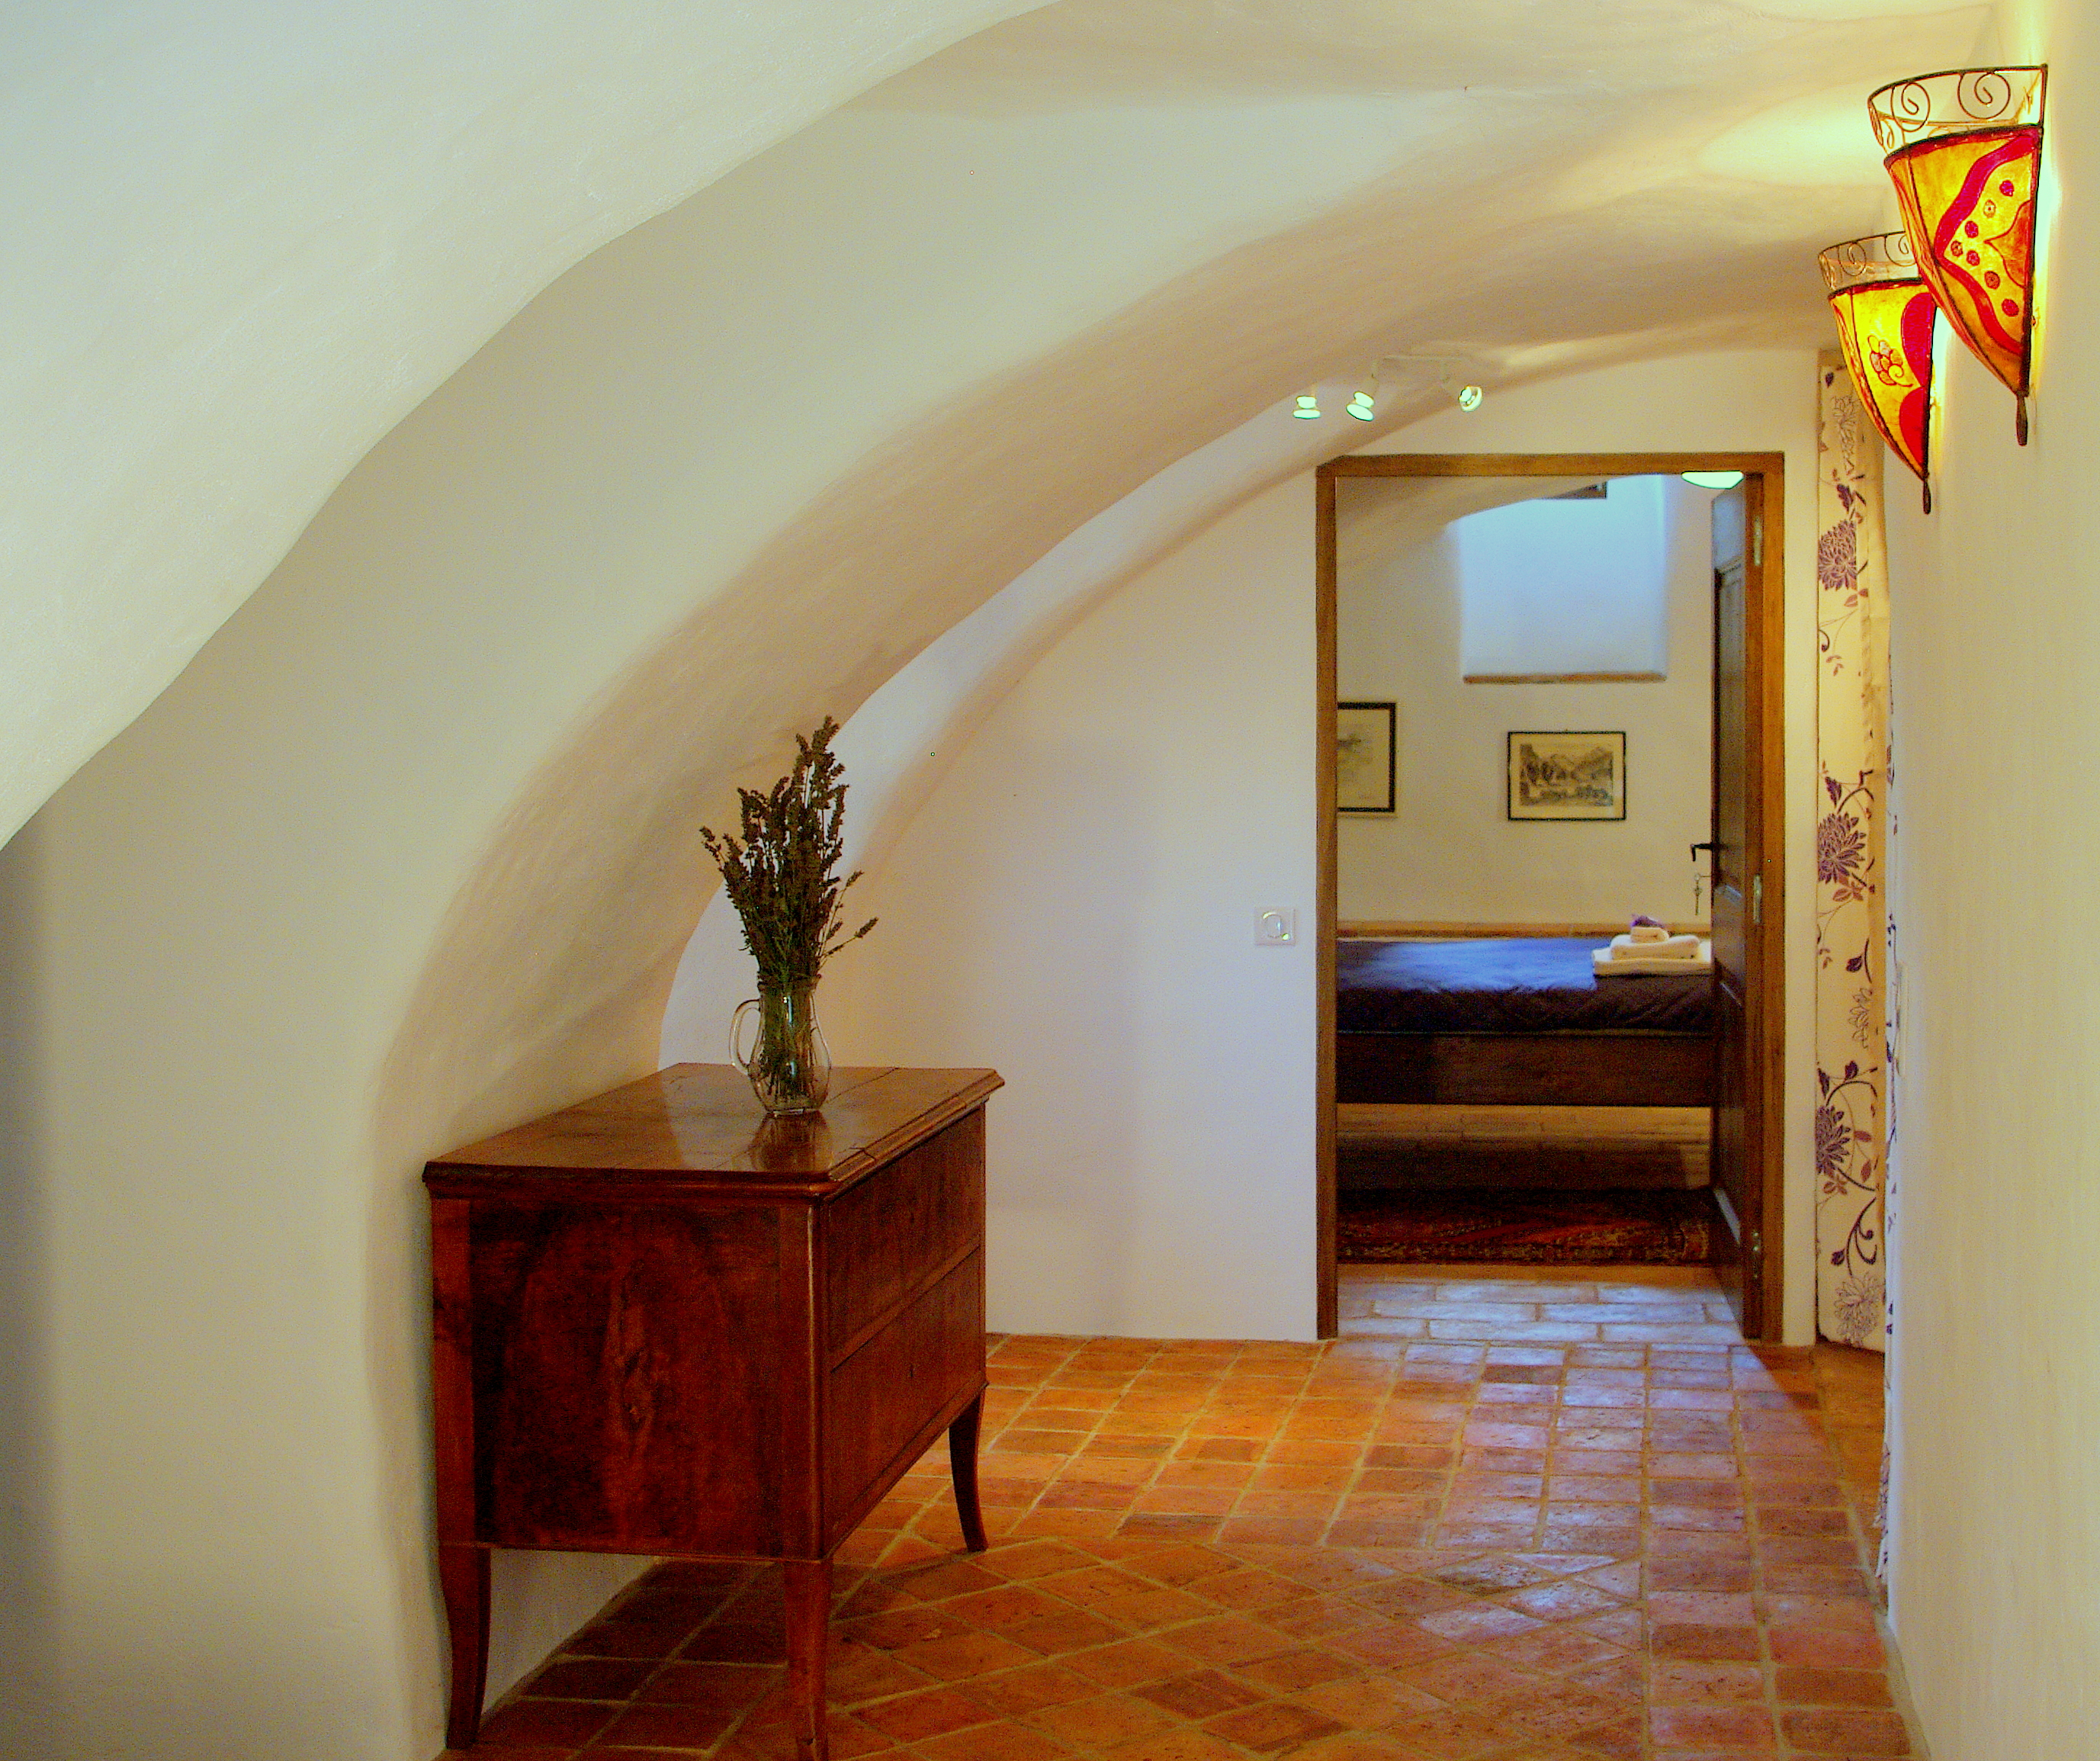 Vaulted hallway leading to rooms